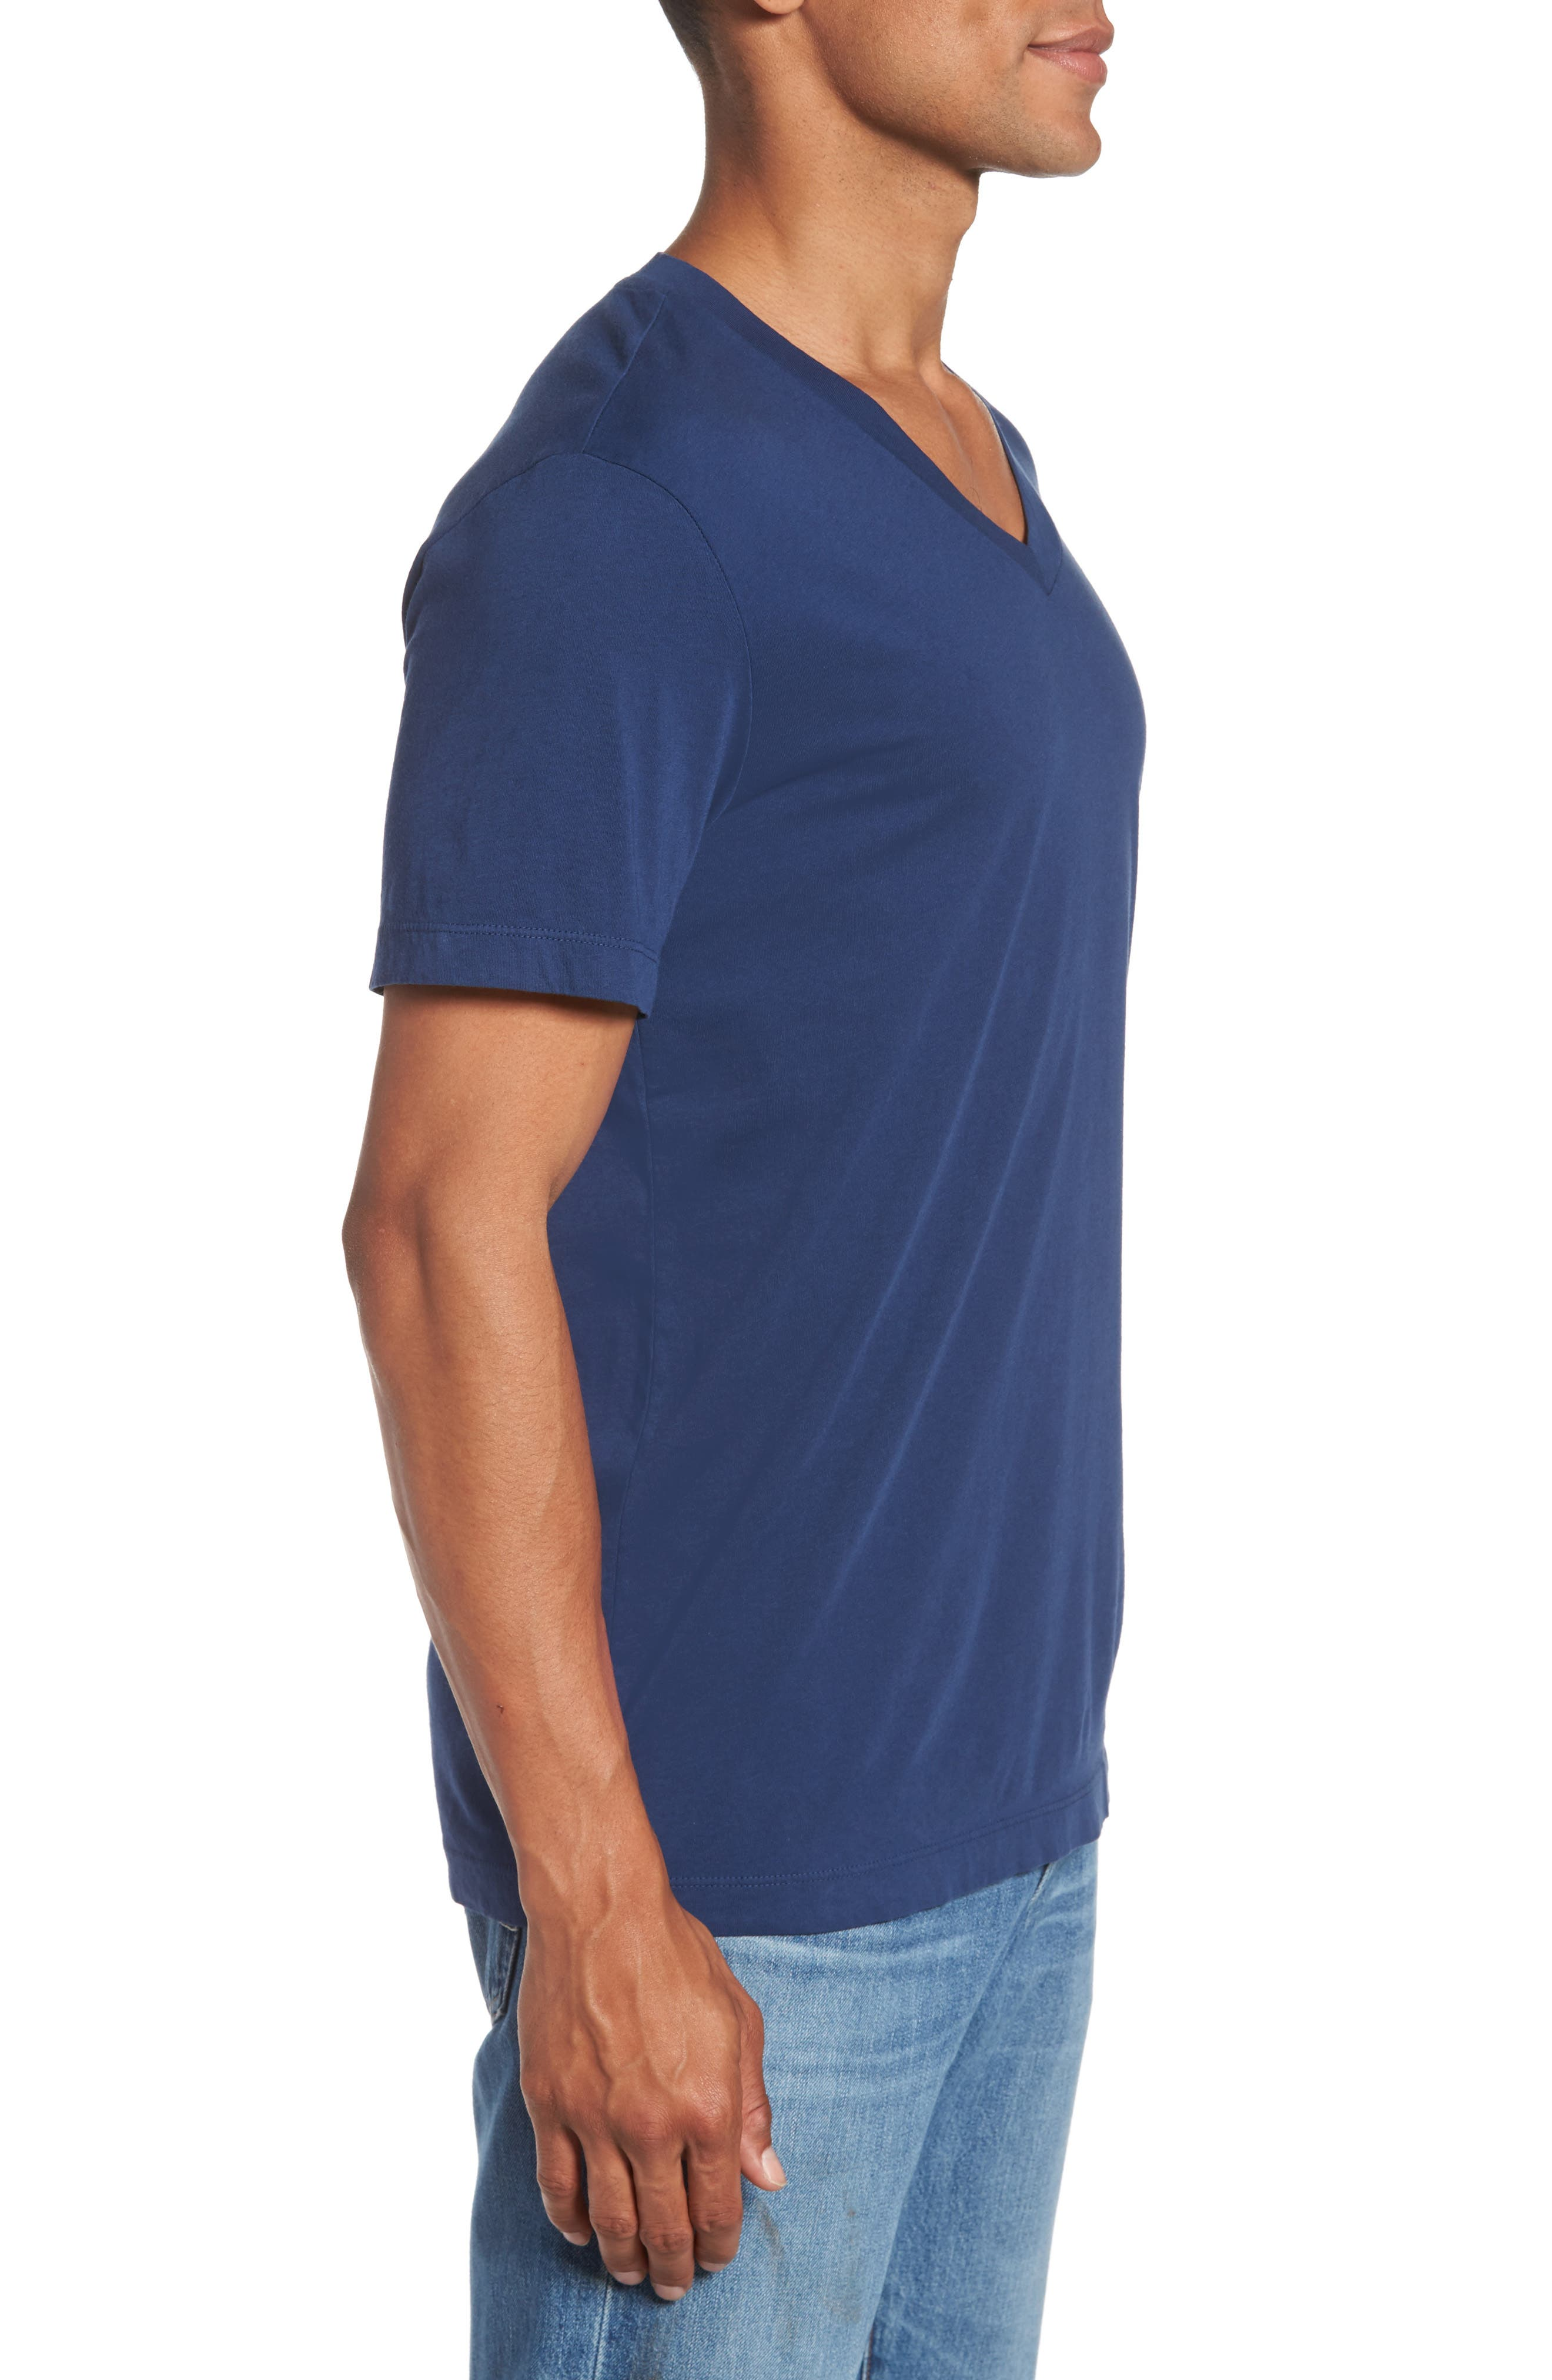 Alternate Image 3  - James Perse Short Sleeve V-Neck T-Shirt